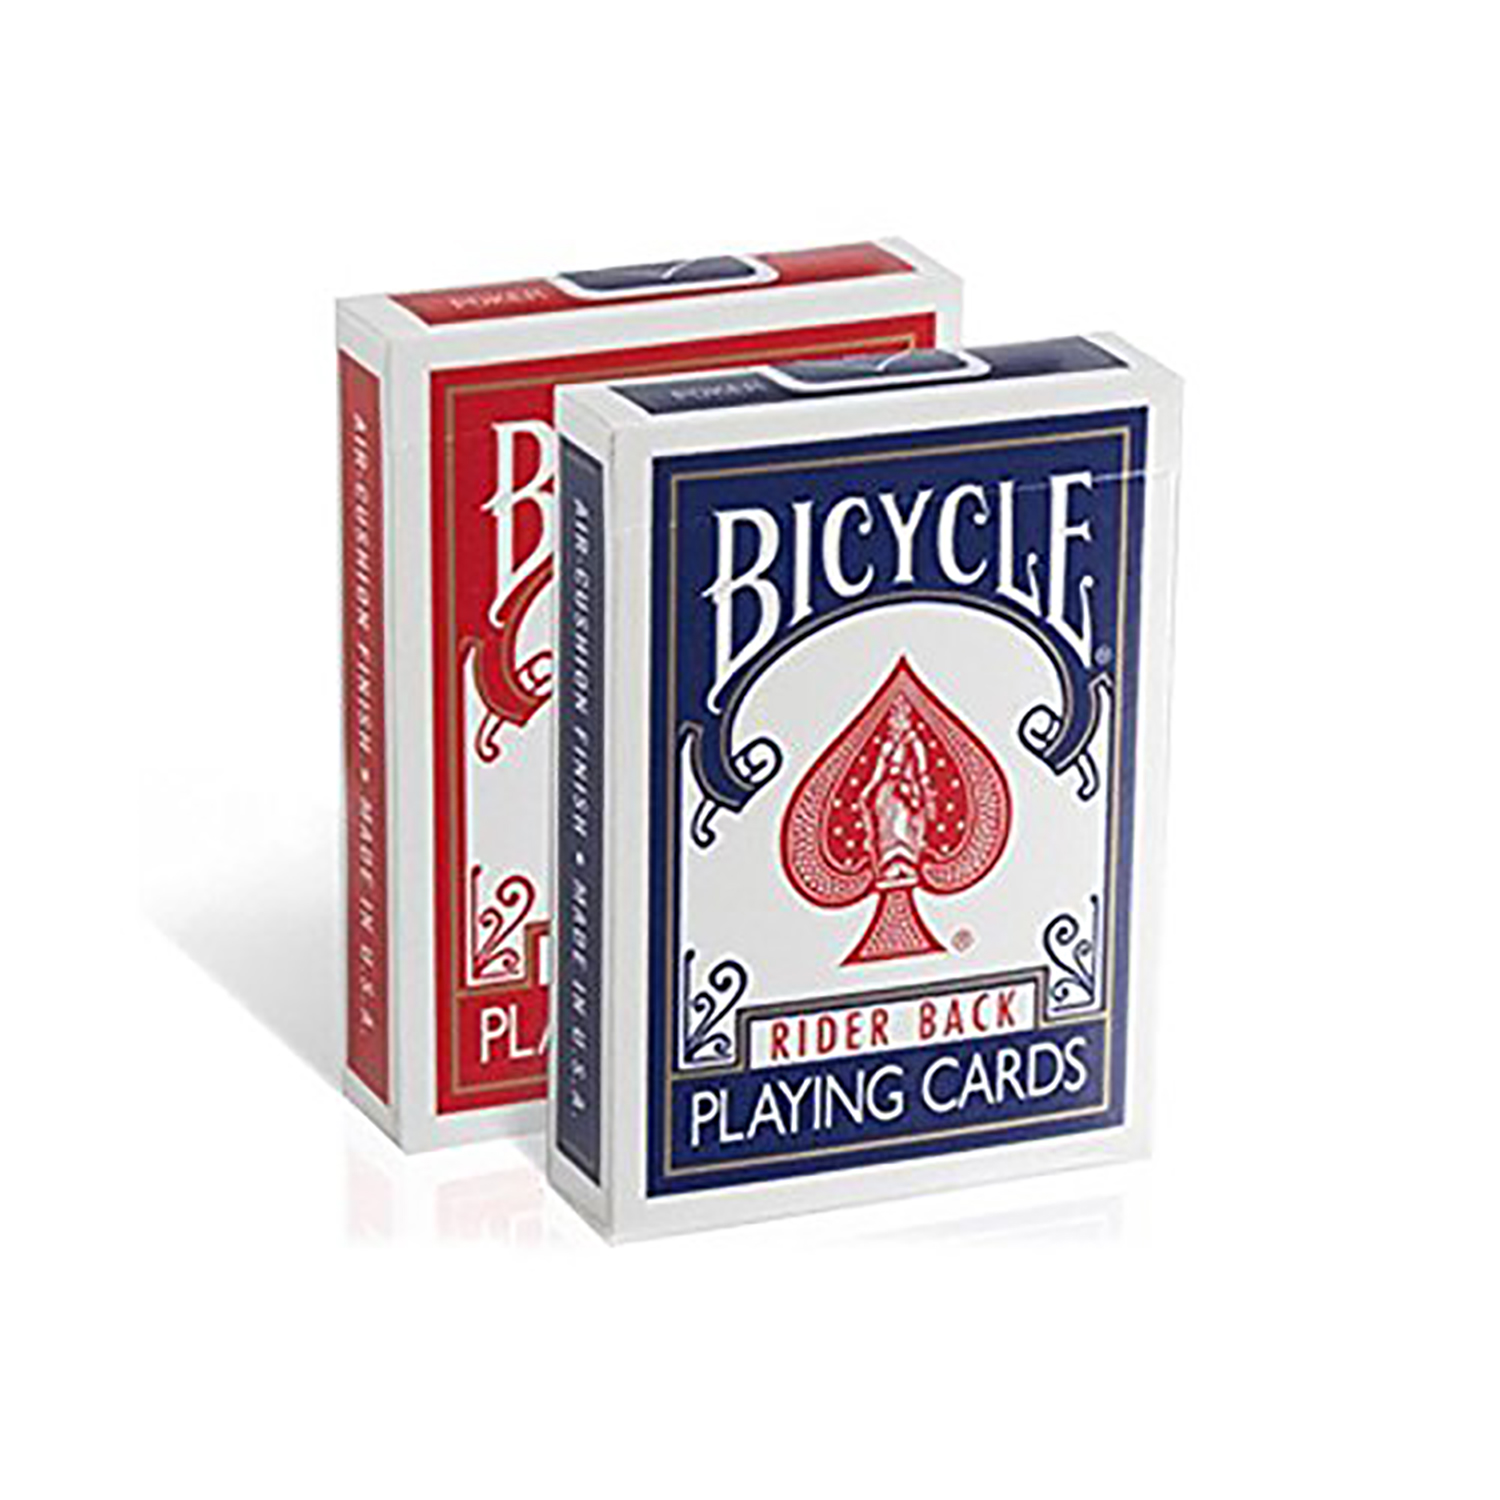 Poker Size Standard Index Playing Cards Packs in Bulk Wholesale (Pack of 48) by Bicycle